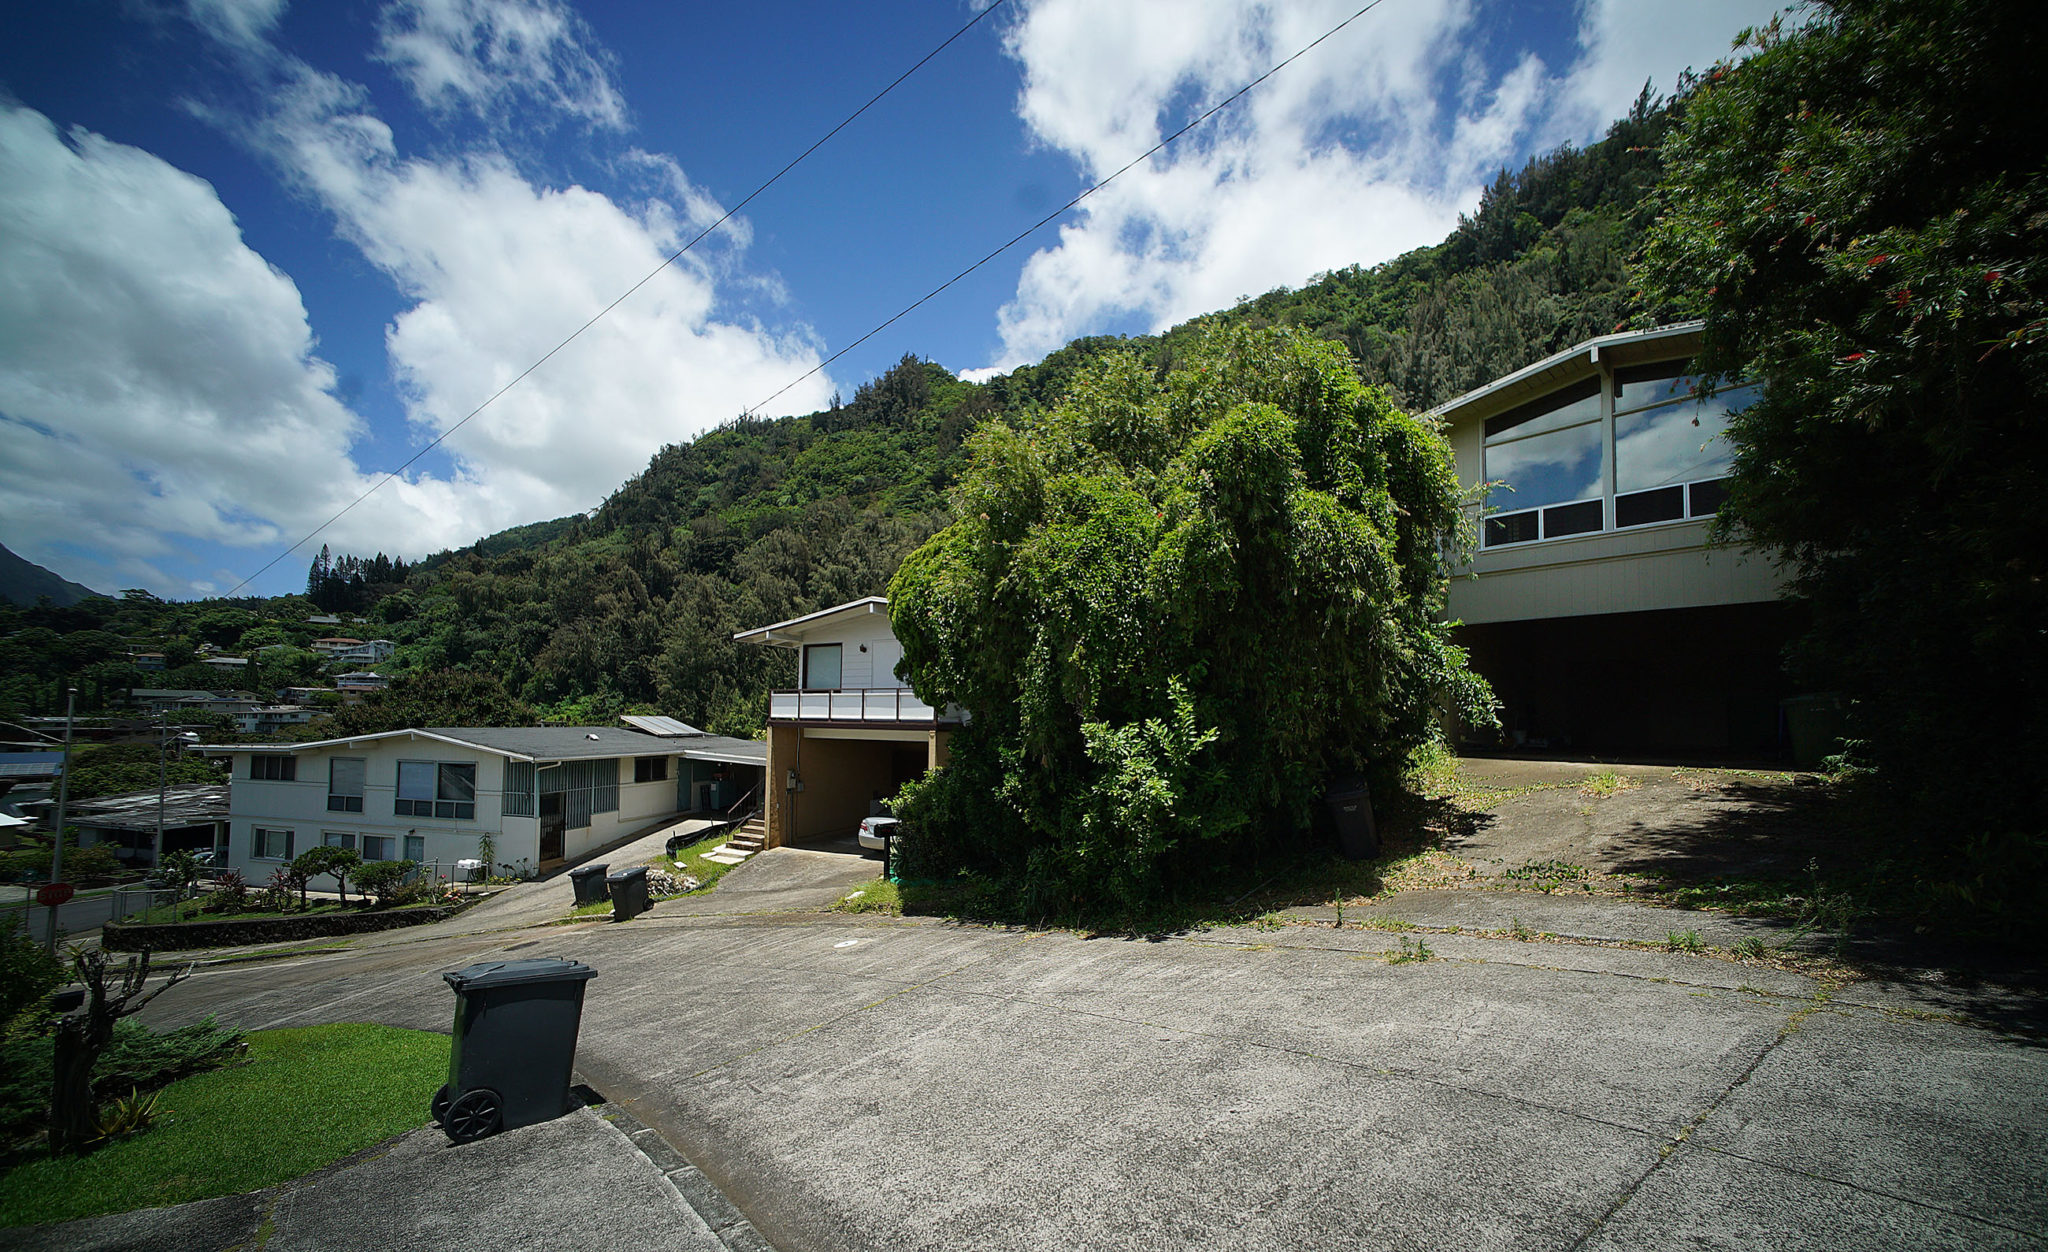 274 Polohiwa Place in Nuuanu valley.